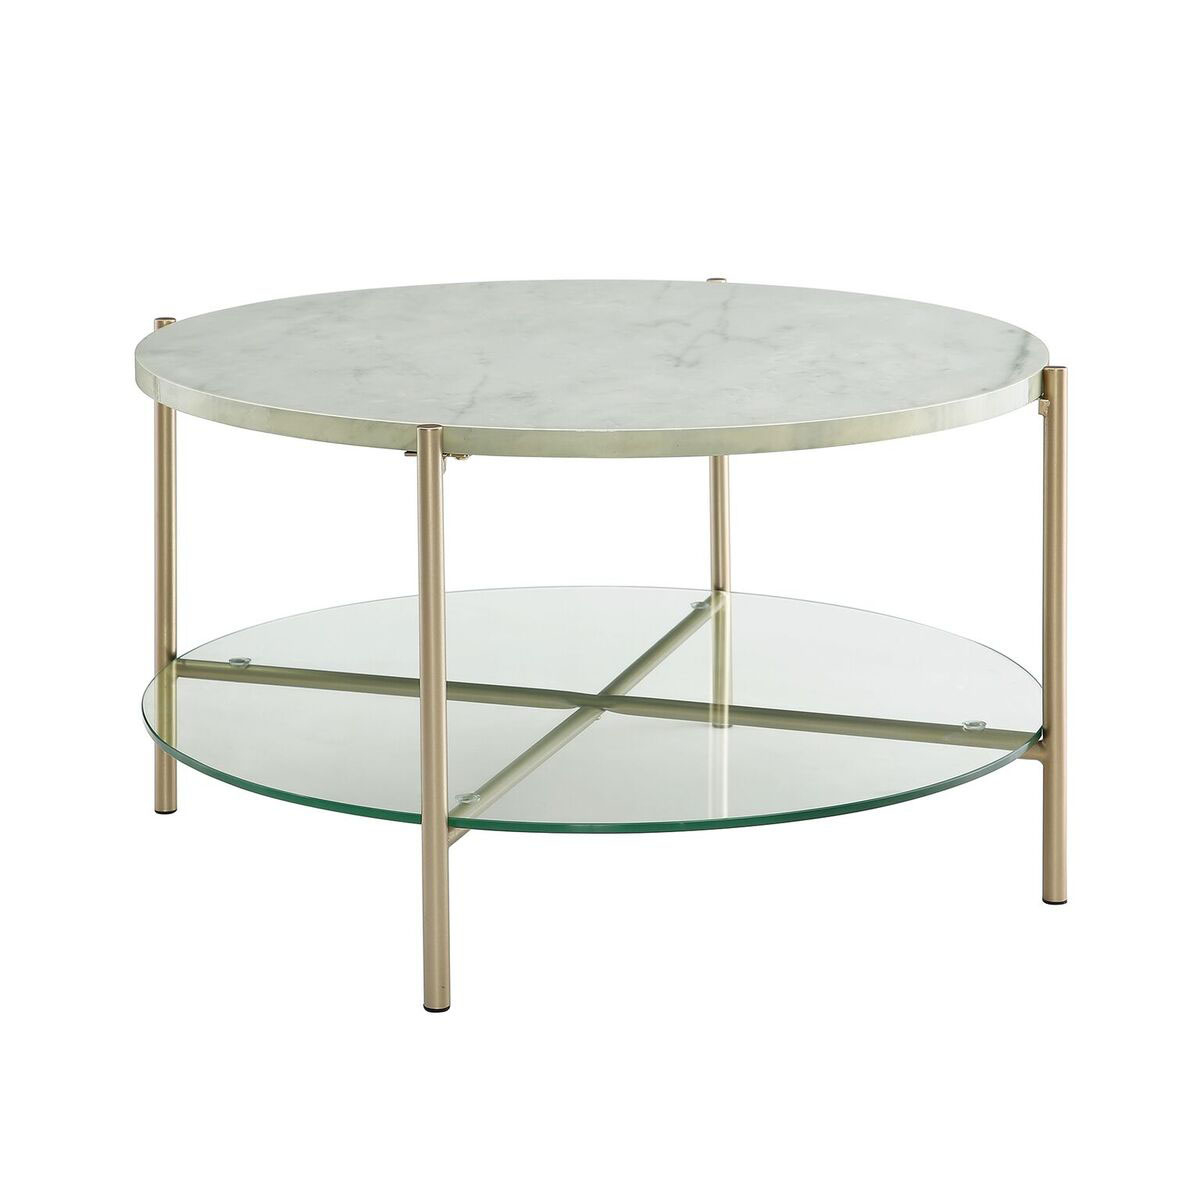 "Marble Glass Top Coffee Table: WE Furniture 32"" Round Coffee Table White Marble Top"